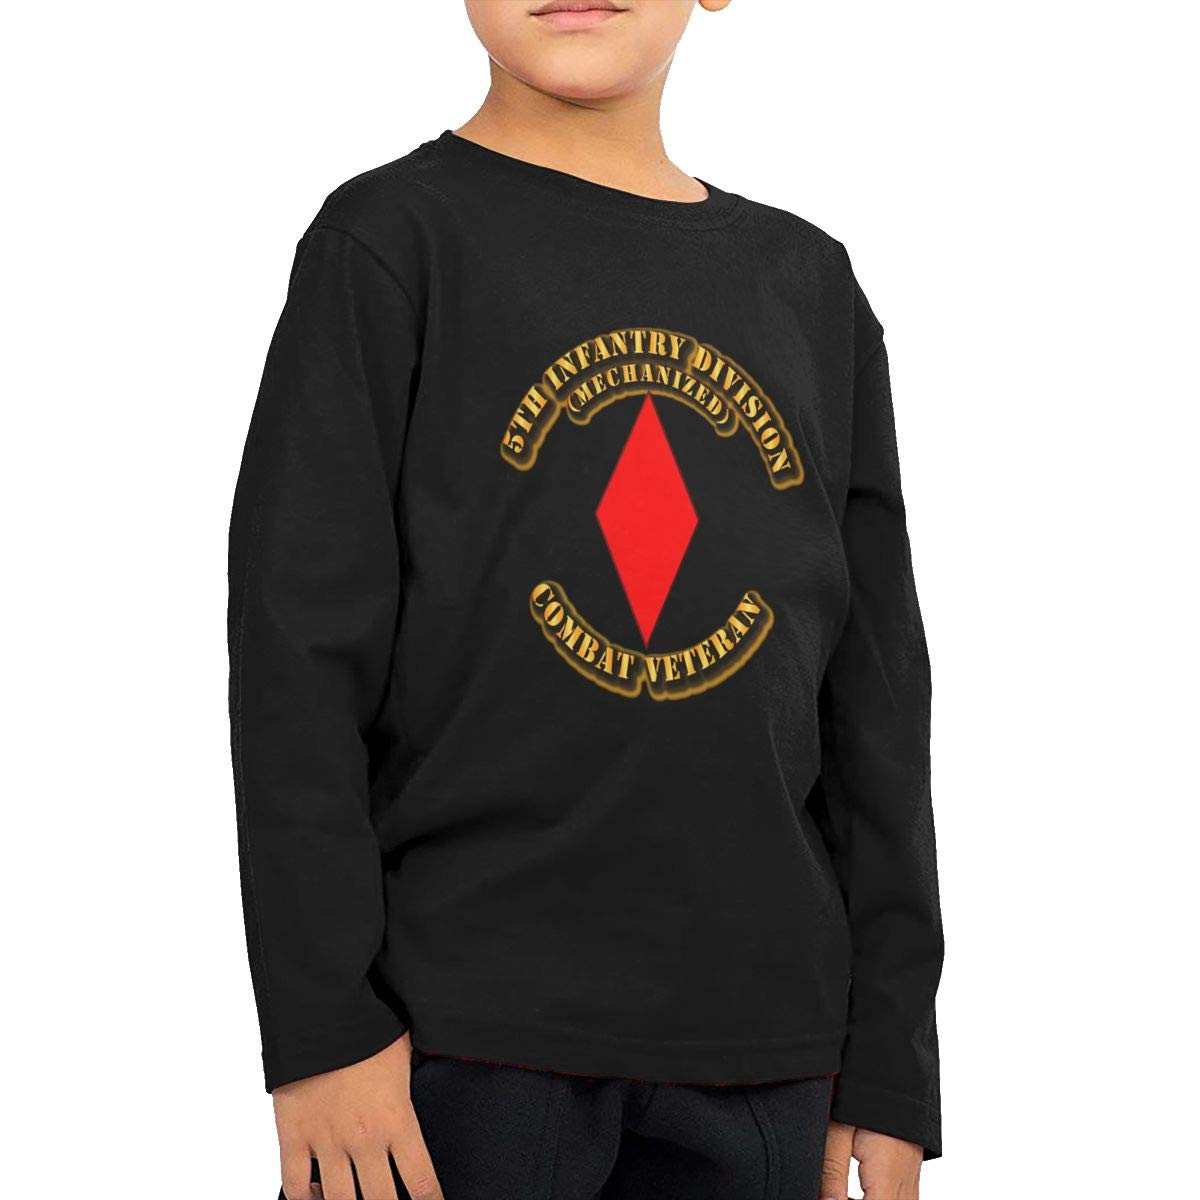 5th Infantry Division Combat Veteran Childrens Long Sleeve T-Shirt Boys Cotton Tee Tops